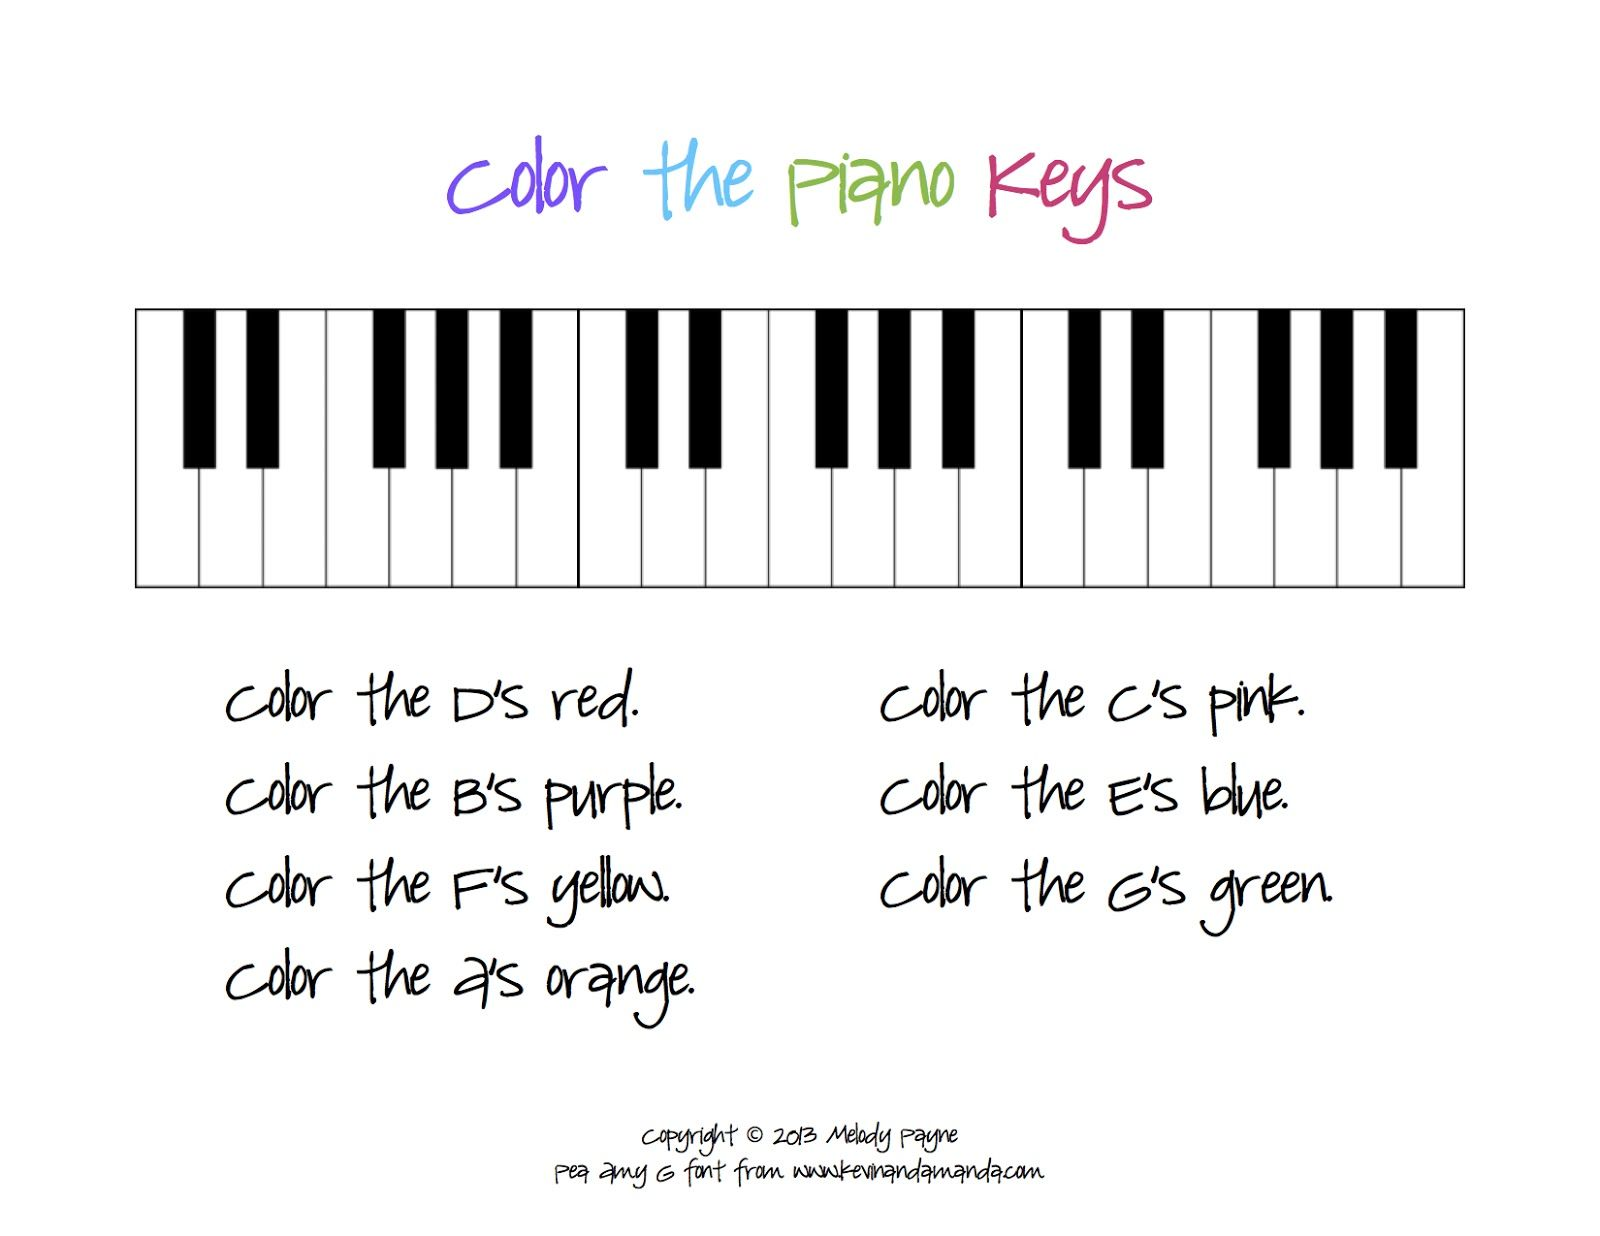 Color theory worksheet for kids - Color The Piano Keys Sheet